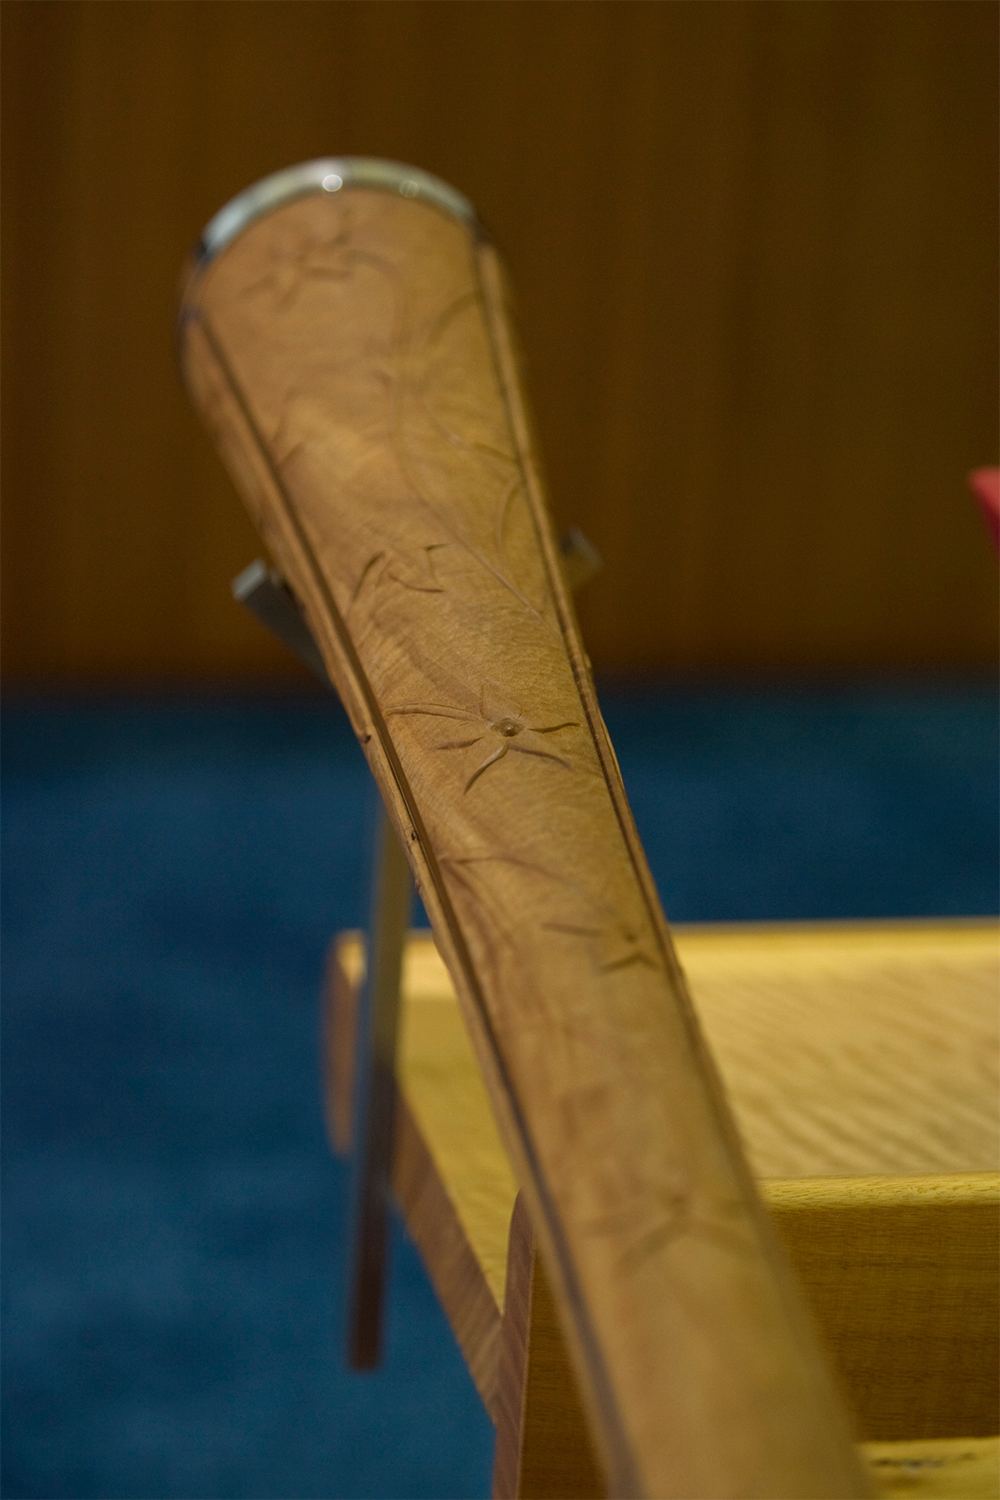 Depiction of the Mace of the ACT Legislative Assembly